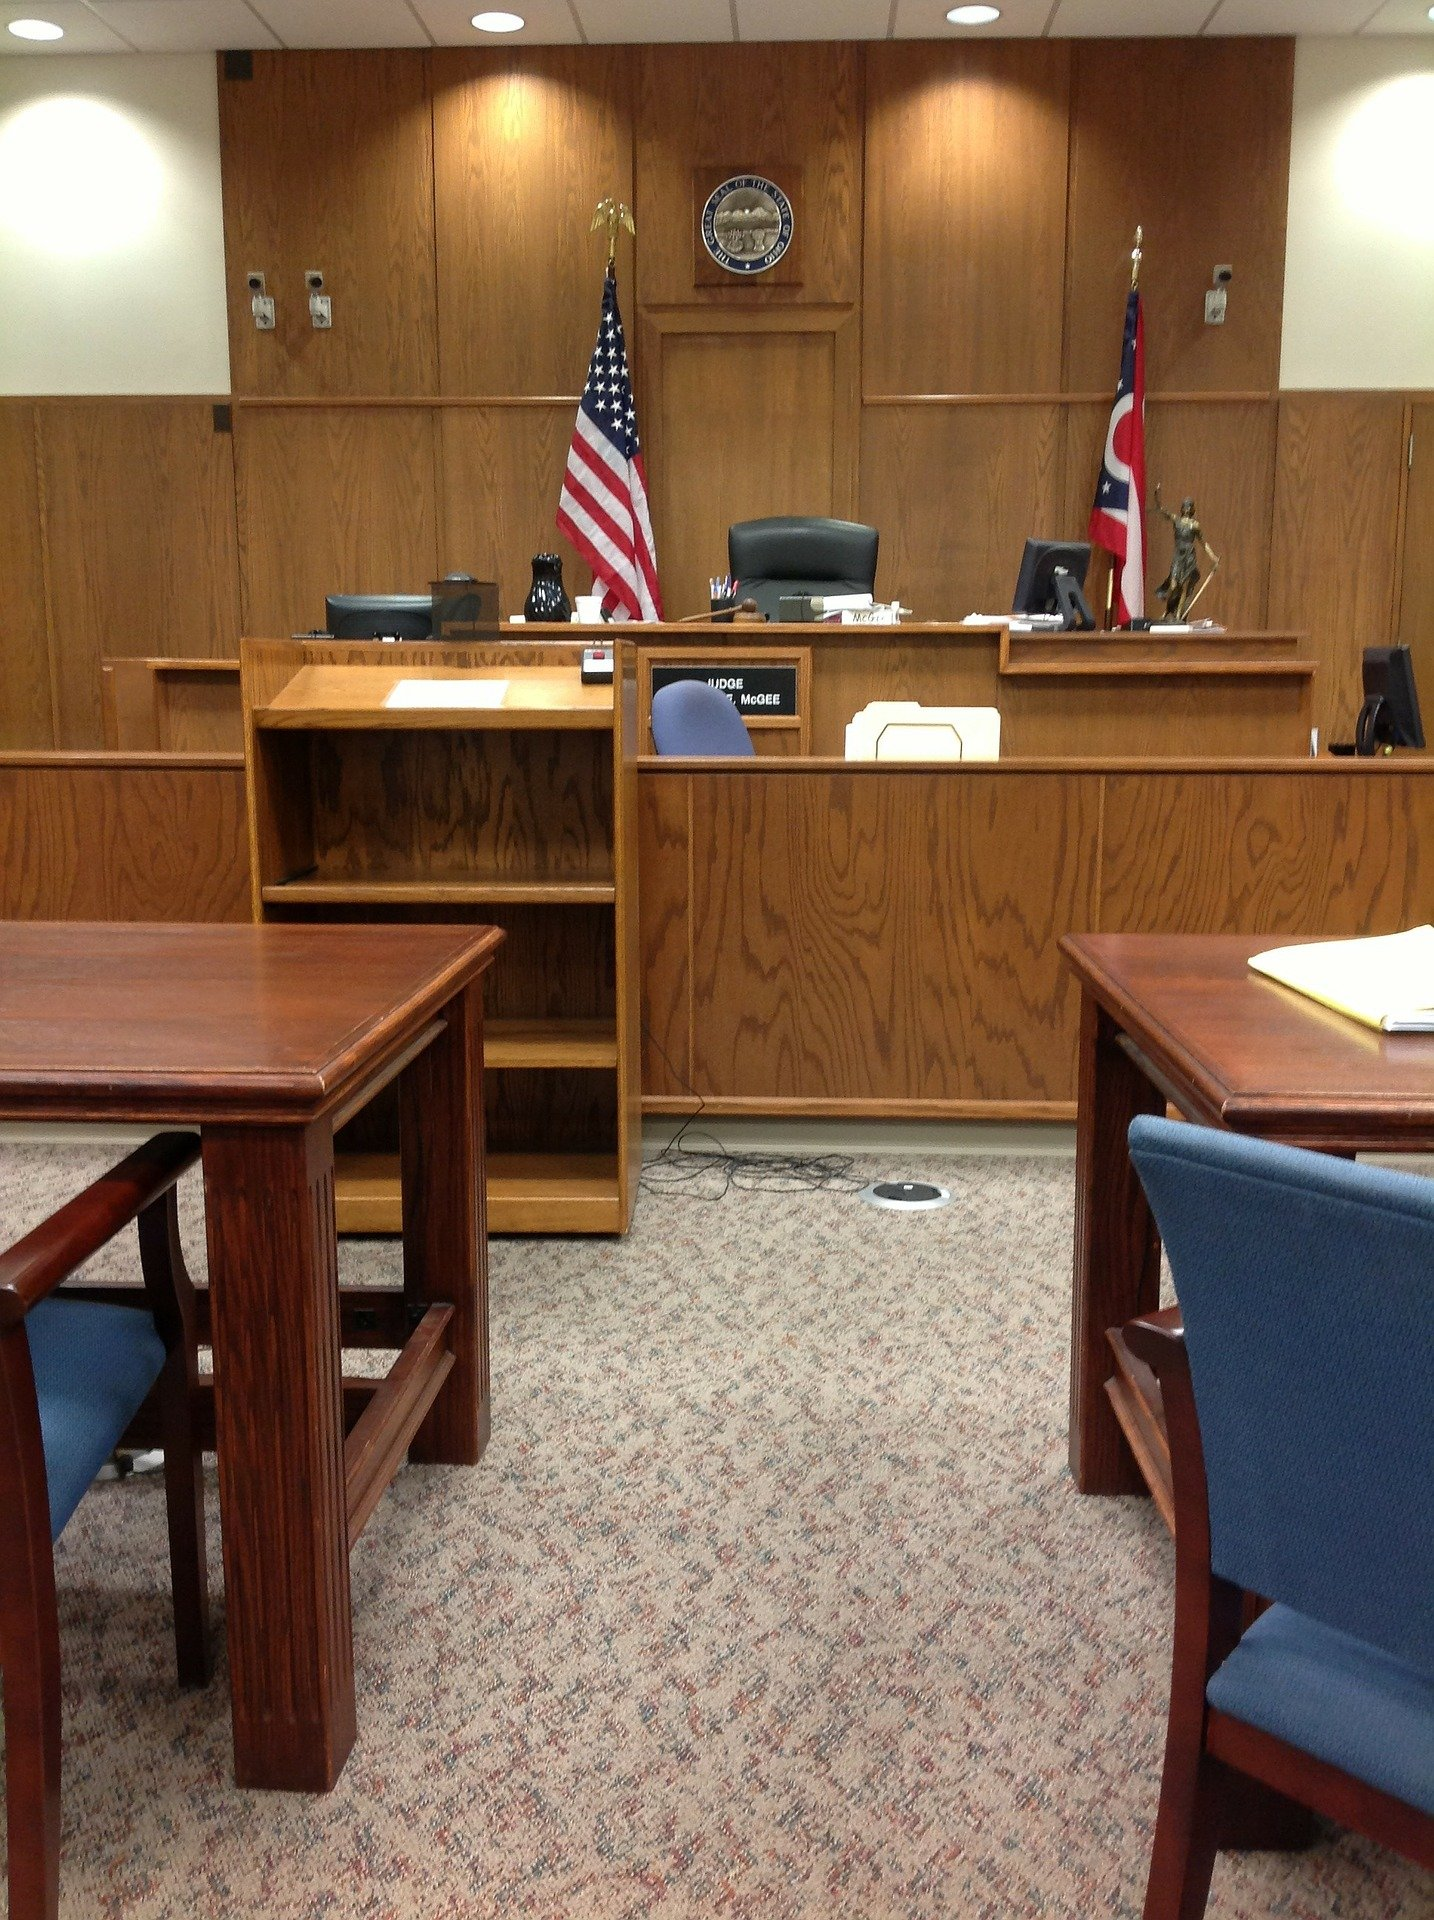 Pictured - An American Court of Law   Source: Pixbay